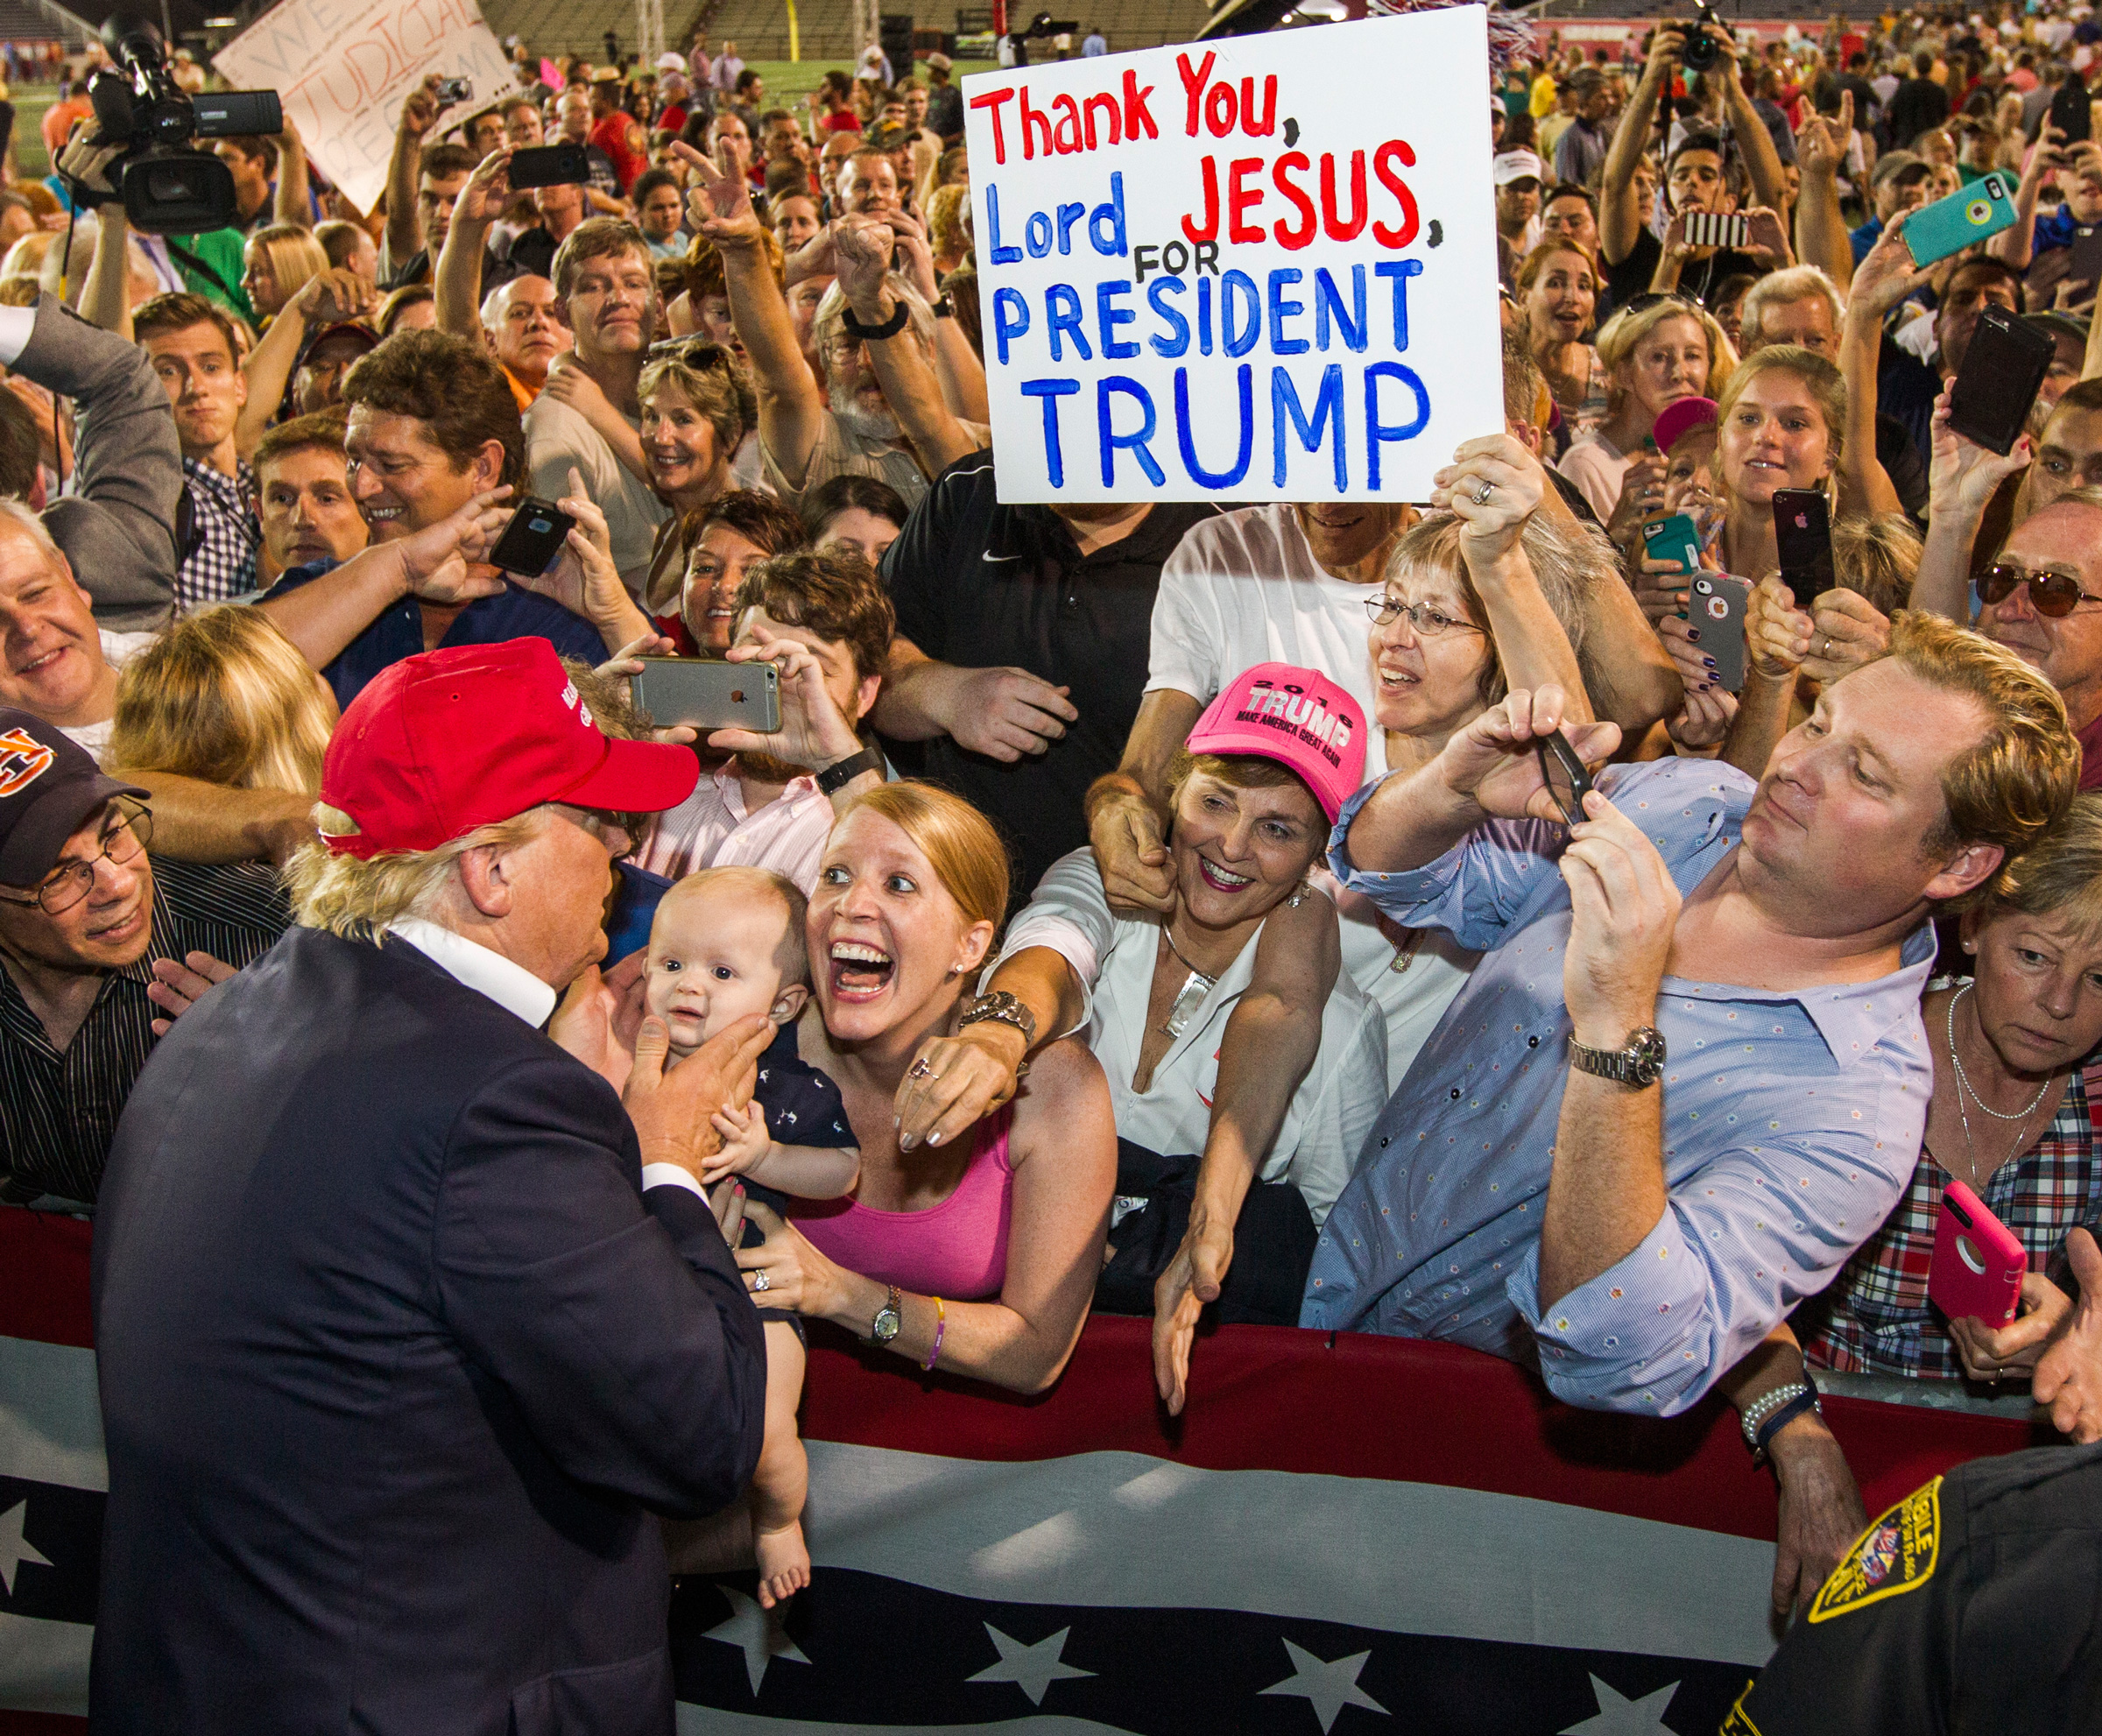 trump-evangelicals-rally.jpg